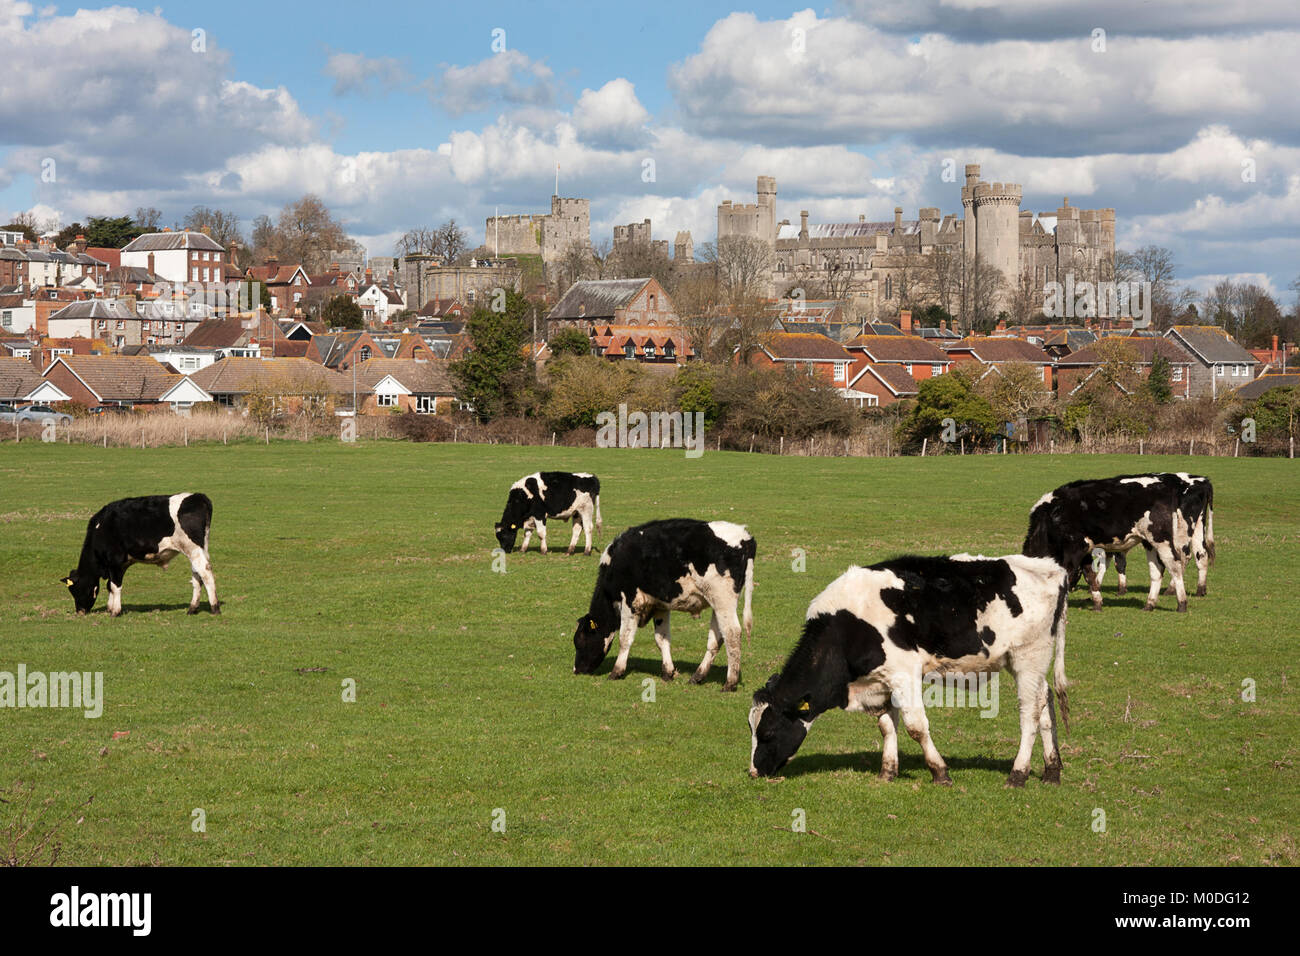 Friesian cows grazing in pasture in Arundel with the castle behind, West Sussex, England Stock Photo